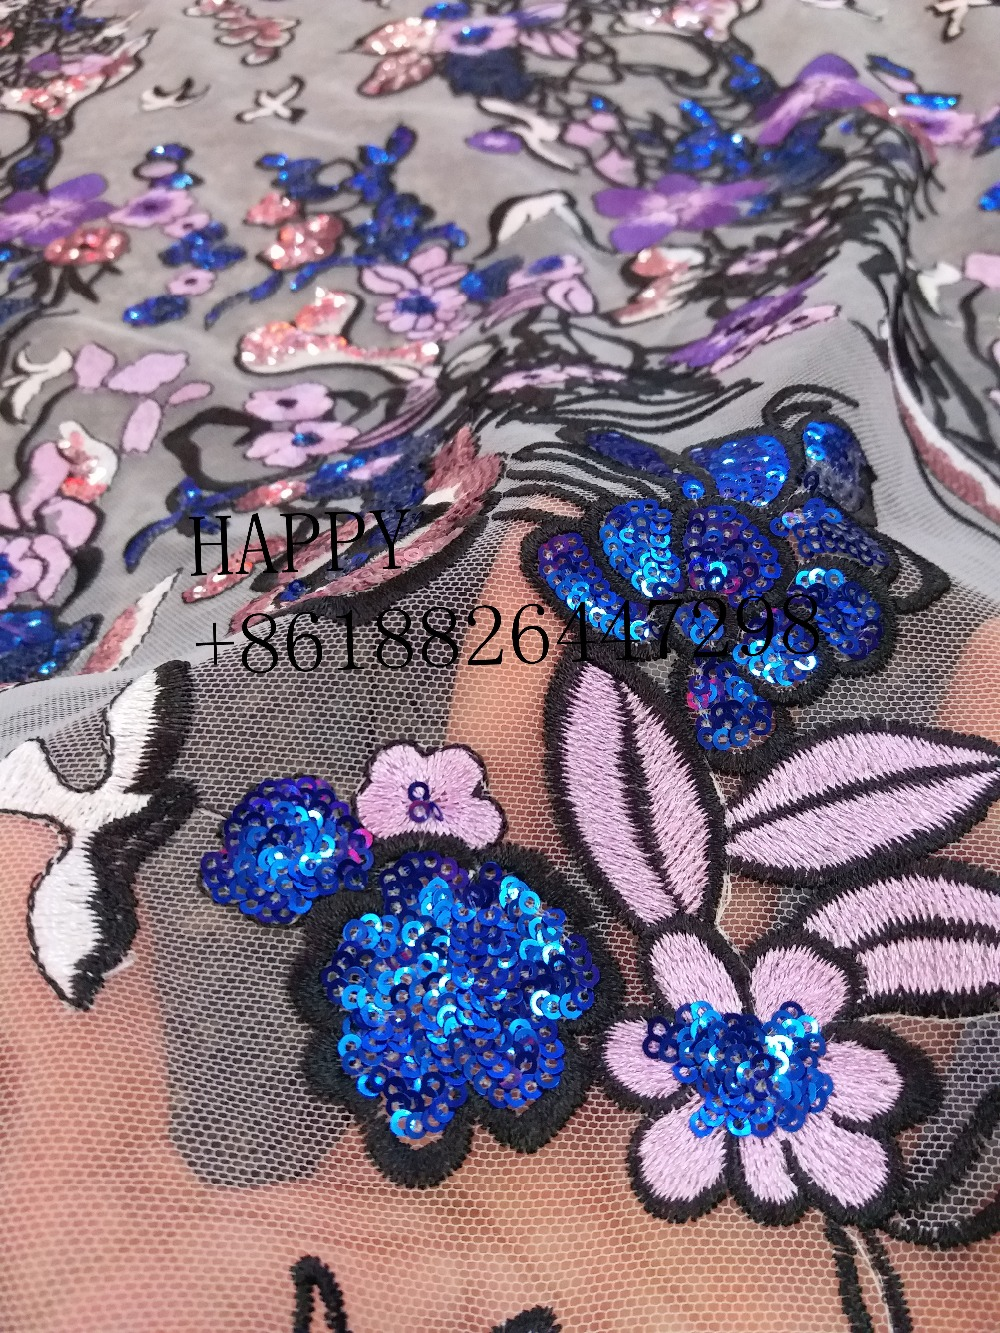 New fashion style mixed color plus beads sequins polyester embroidery in the chiffon net wedding / evening dress lace fabric